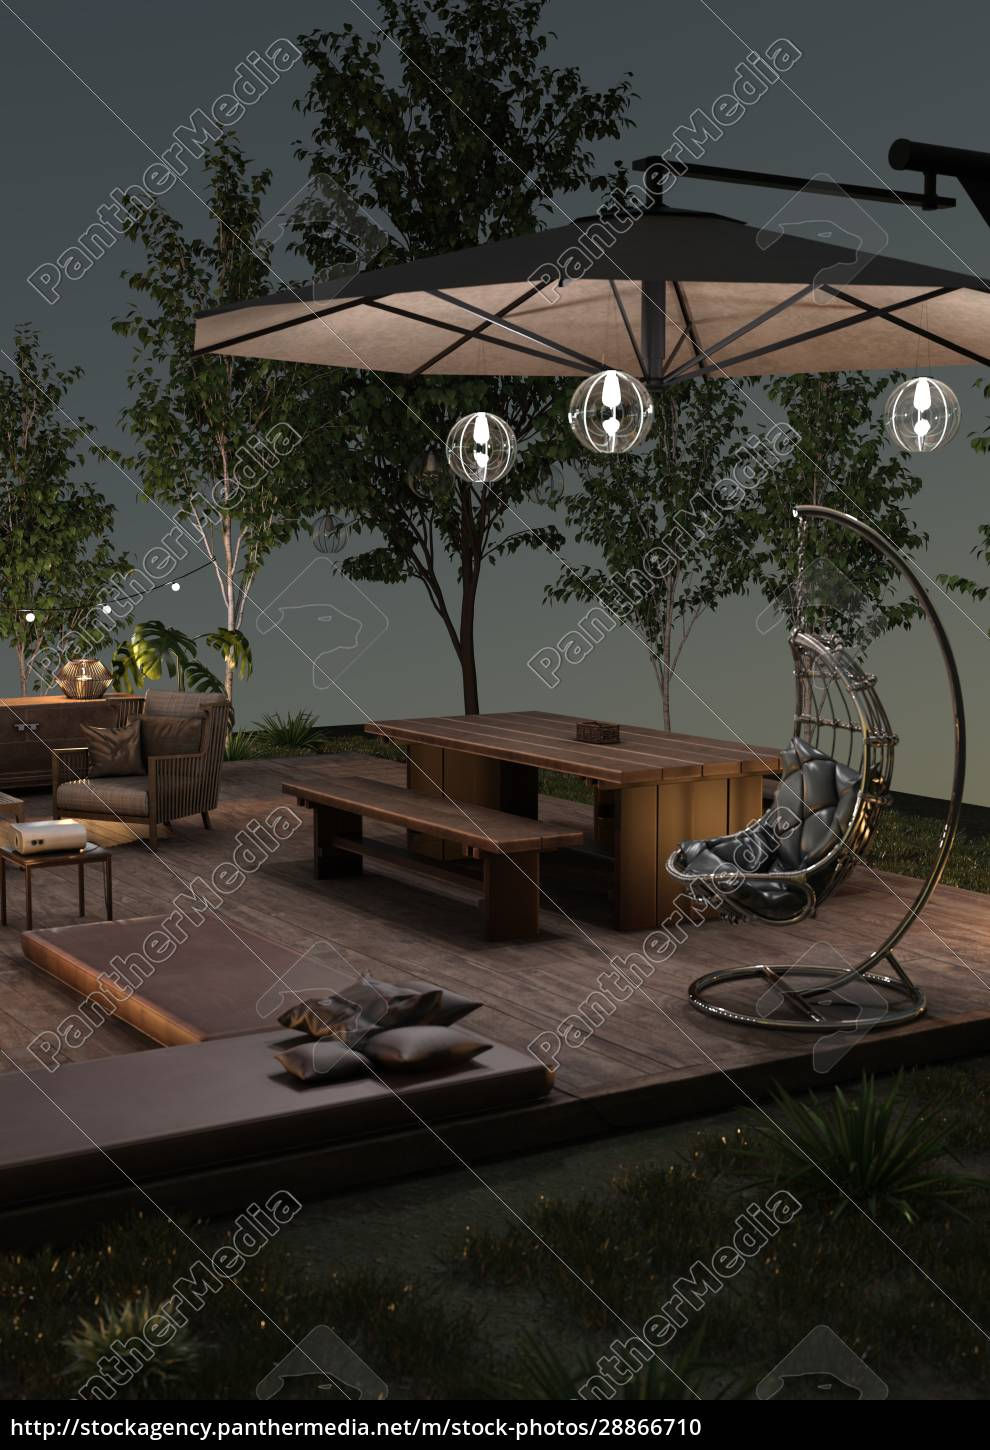 3d, rendering, home, theater, outside - 28866710